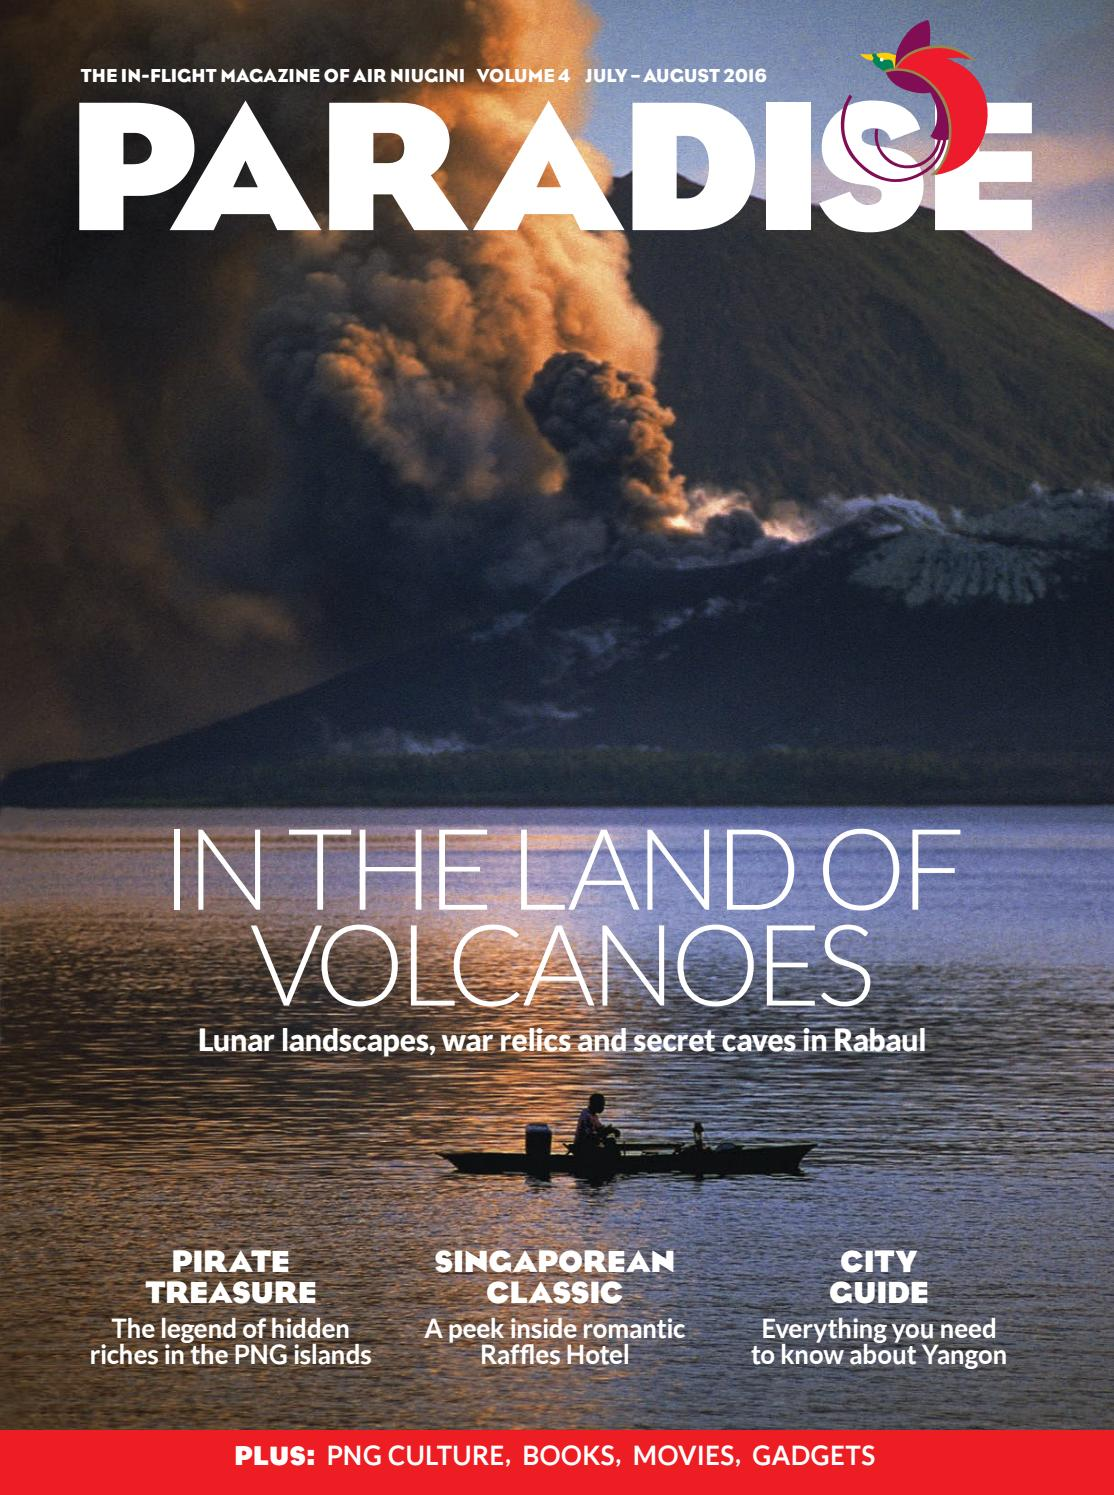 Paradise the in flight magazine of air niugini vol 2 2015 by paradise the in flight magazine of air niugini vol 2 2015 by business advantage international issuu fandeluxe Choice Image